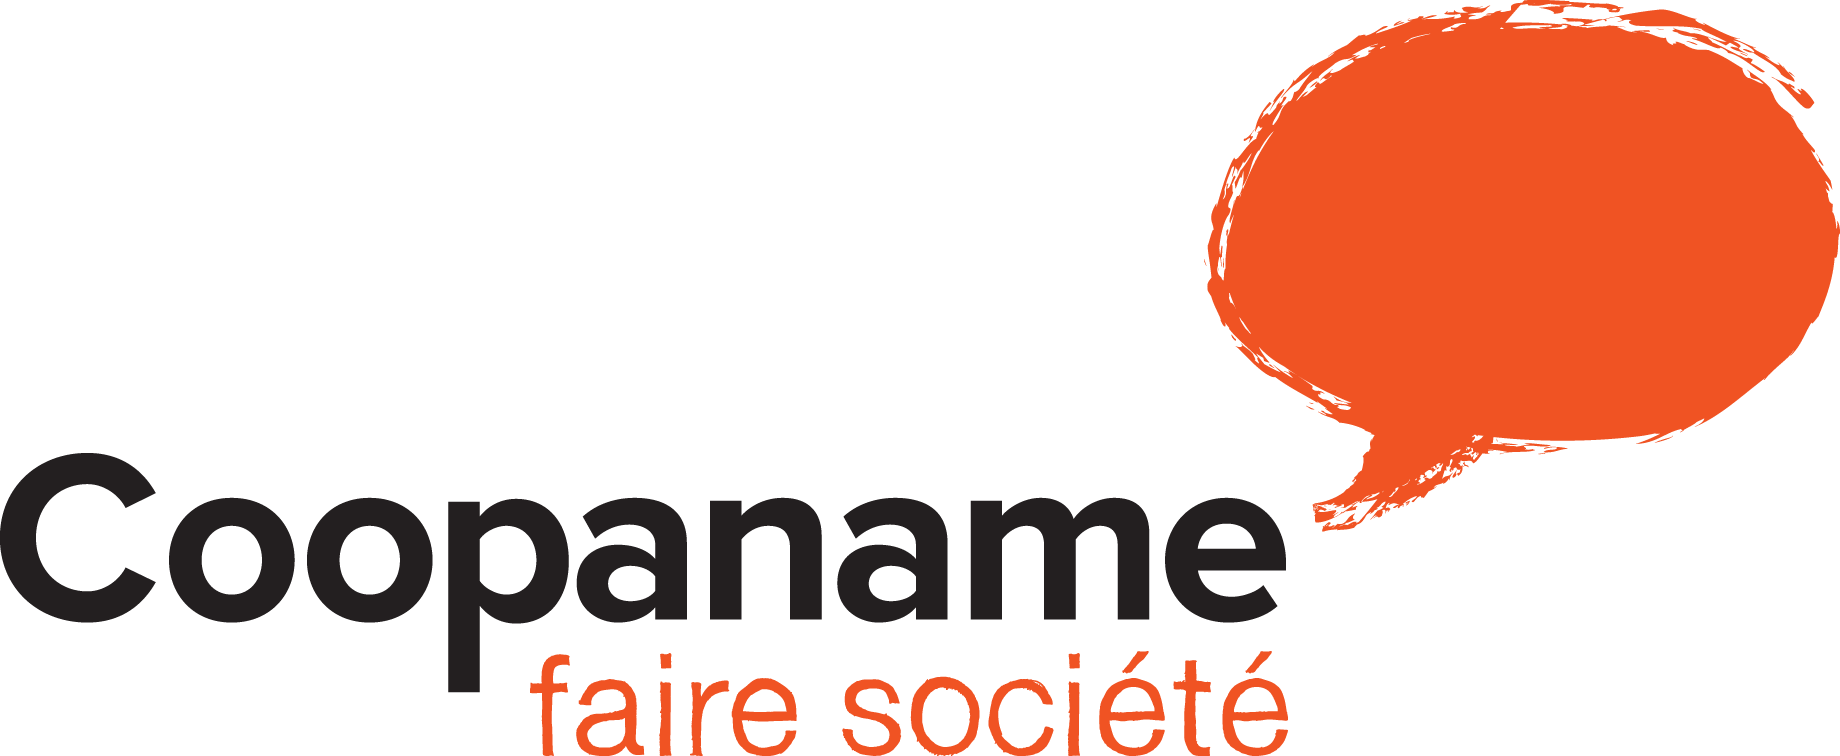 coopaname_logo_HD-PNG copie.png